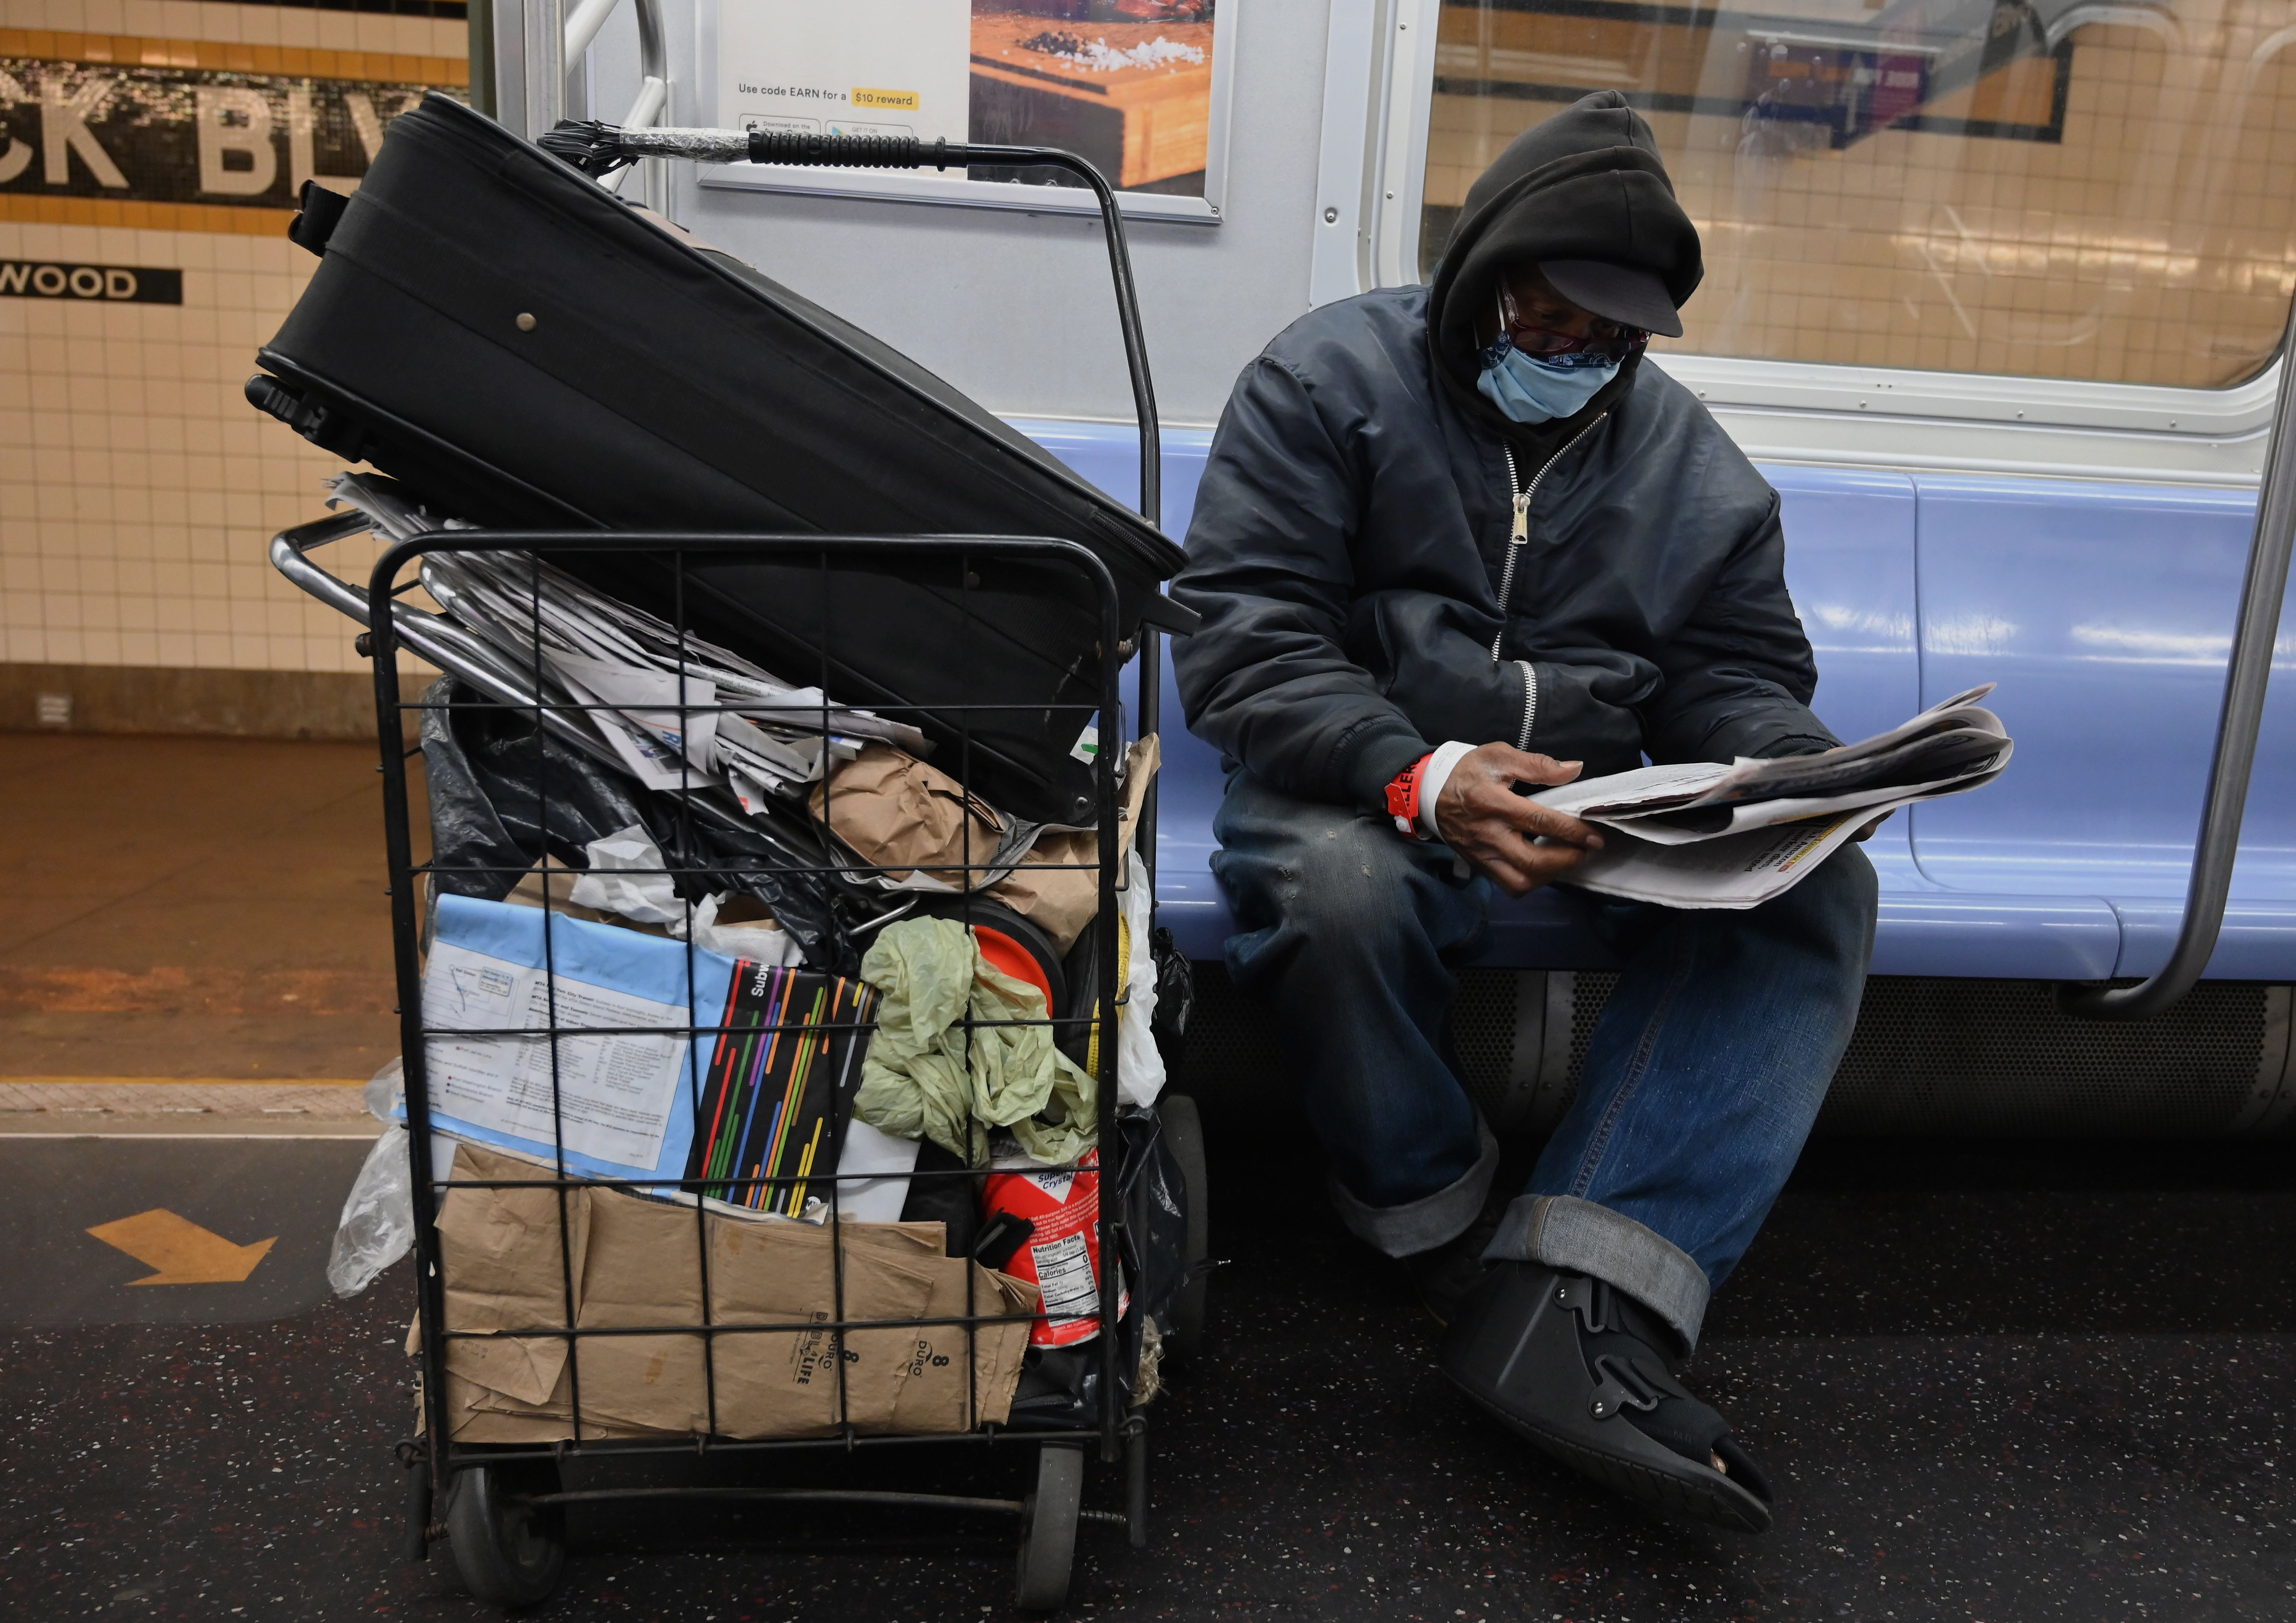 Damon, 67 who is homeless reads a newspaper on a subway train on May 7, 2020 in New York City. (Photo by ANGELA WEISS/AFP via Getty Images)